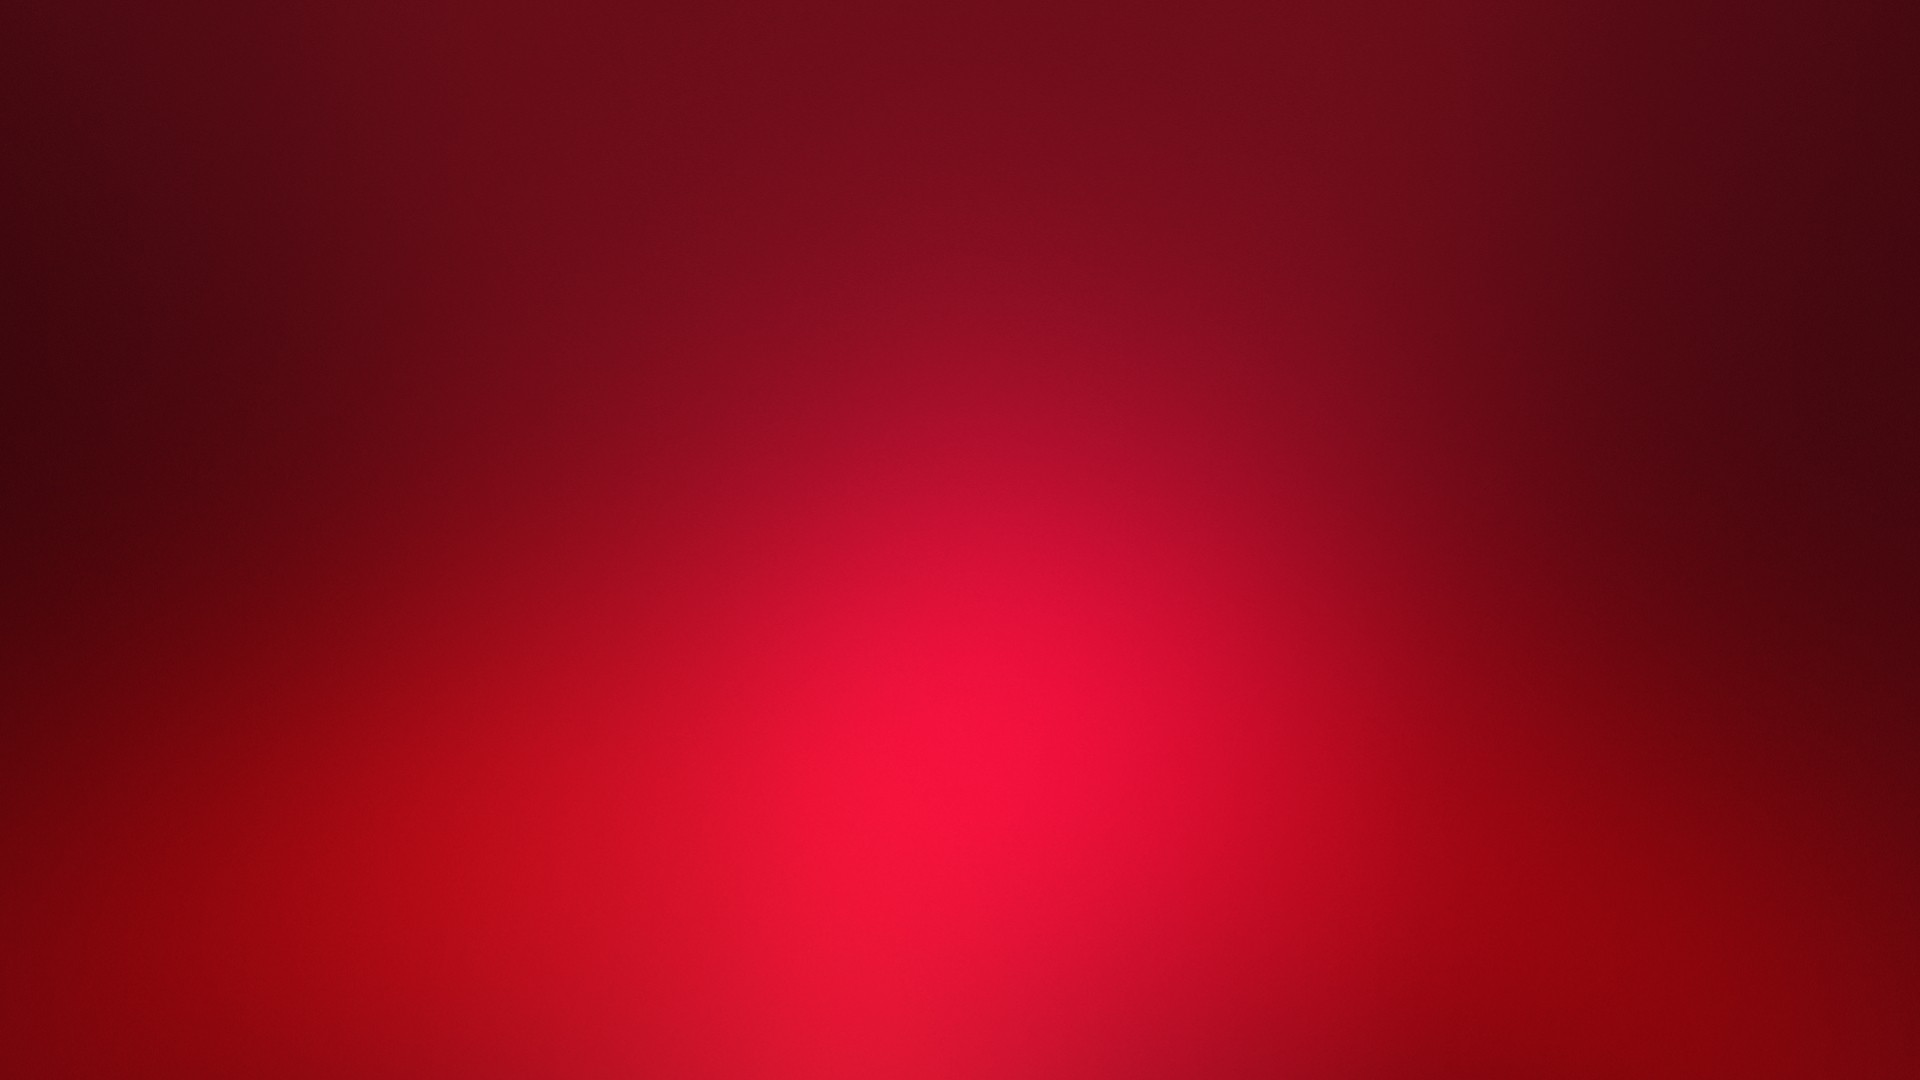 Abstract: Red Faded Light Blur Desktop Wallpapers 1920x1080 for HD ...